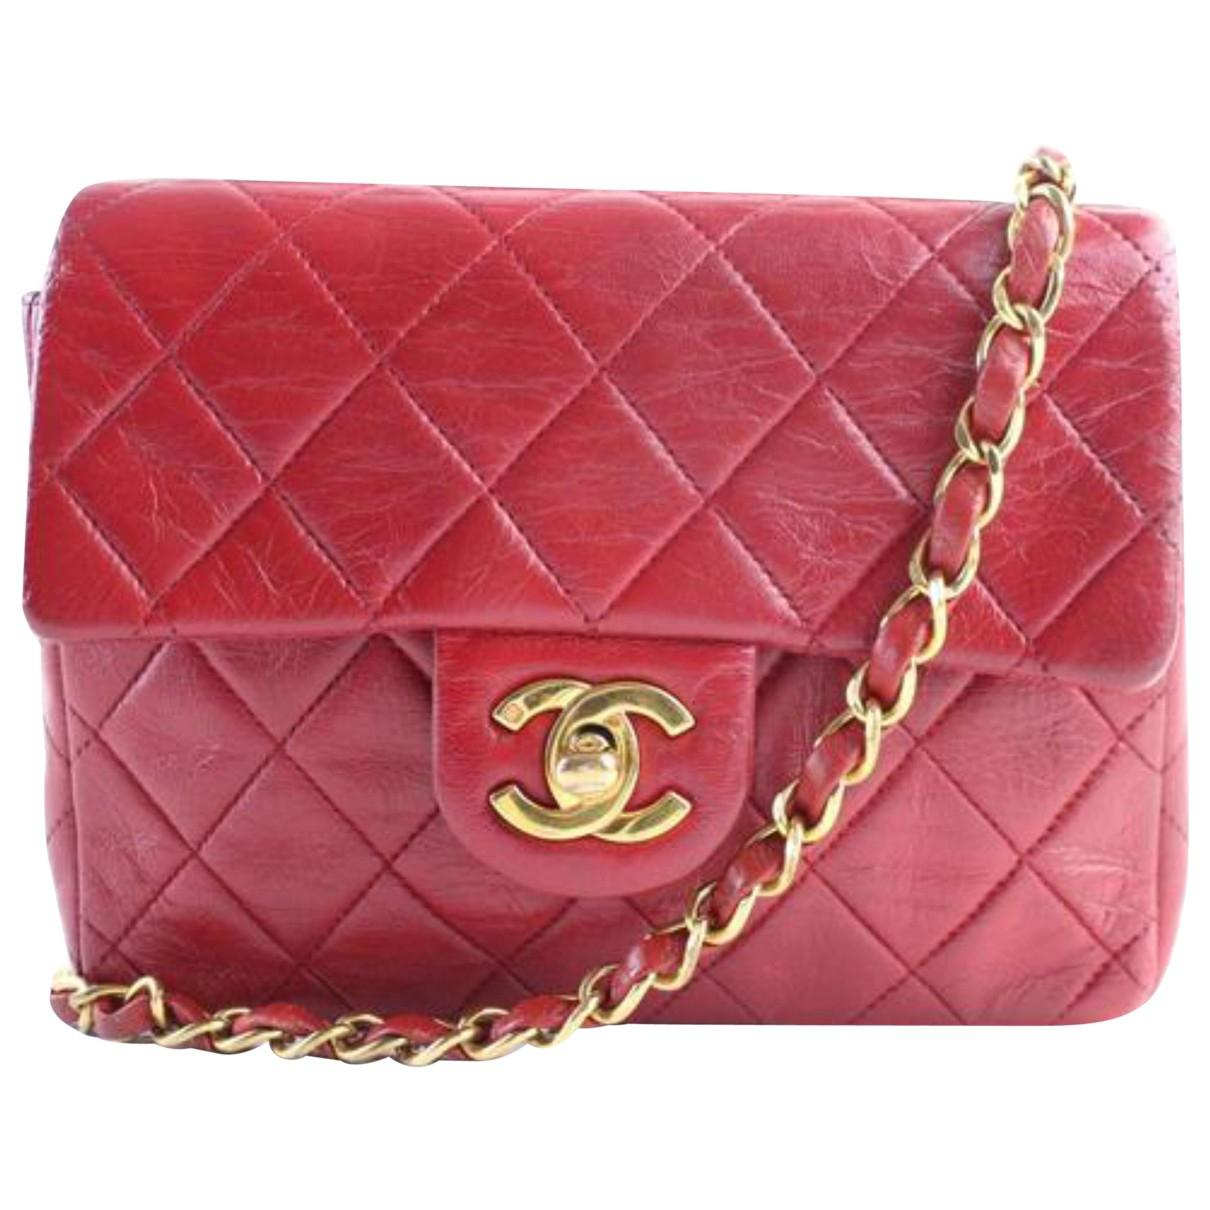 Chanel Vintage Red Leather Handbag in Red - Lyst 5d30c995d0742